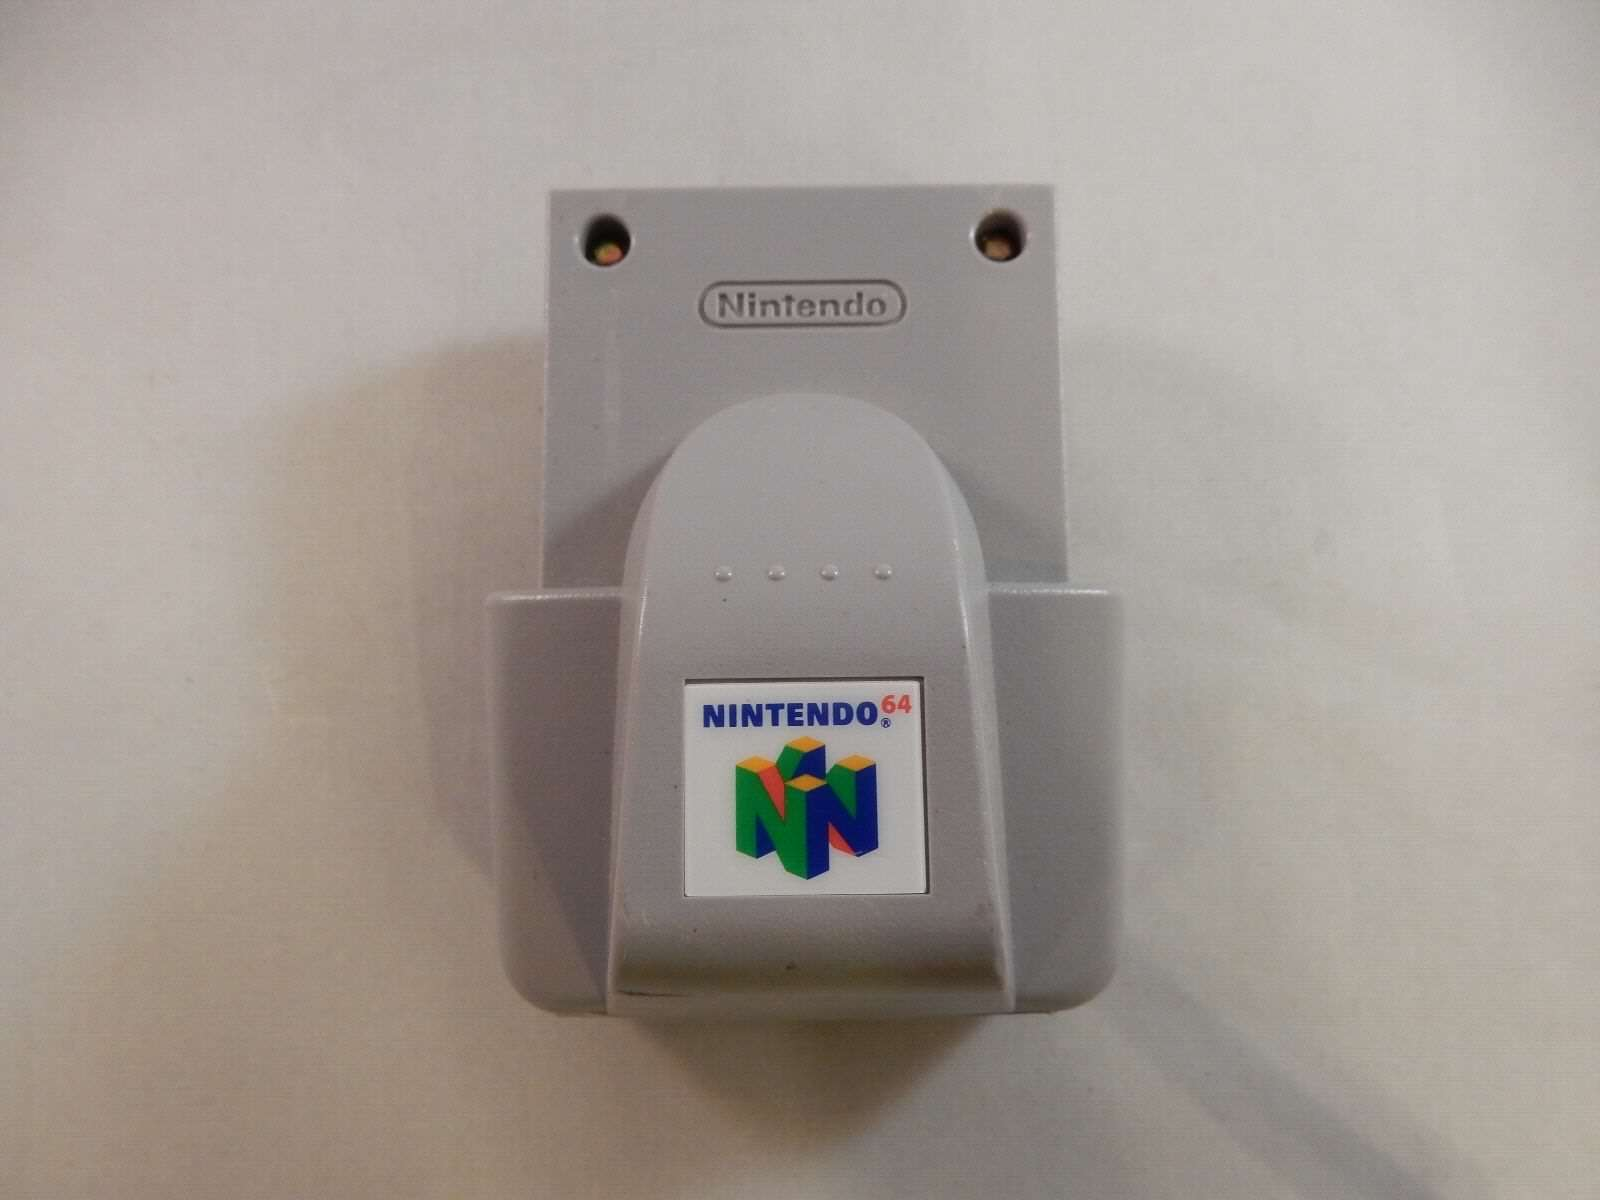 official-genuine-oem-nintendo-64-n64-rumble-pak-nus-013-tested-a238-e1277402706cef45d676ca8def9e0fa9